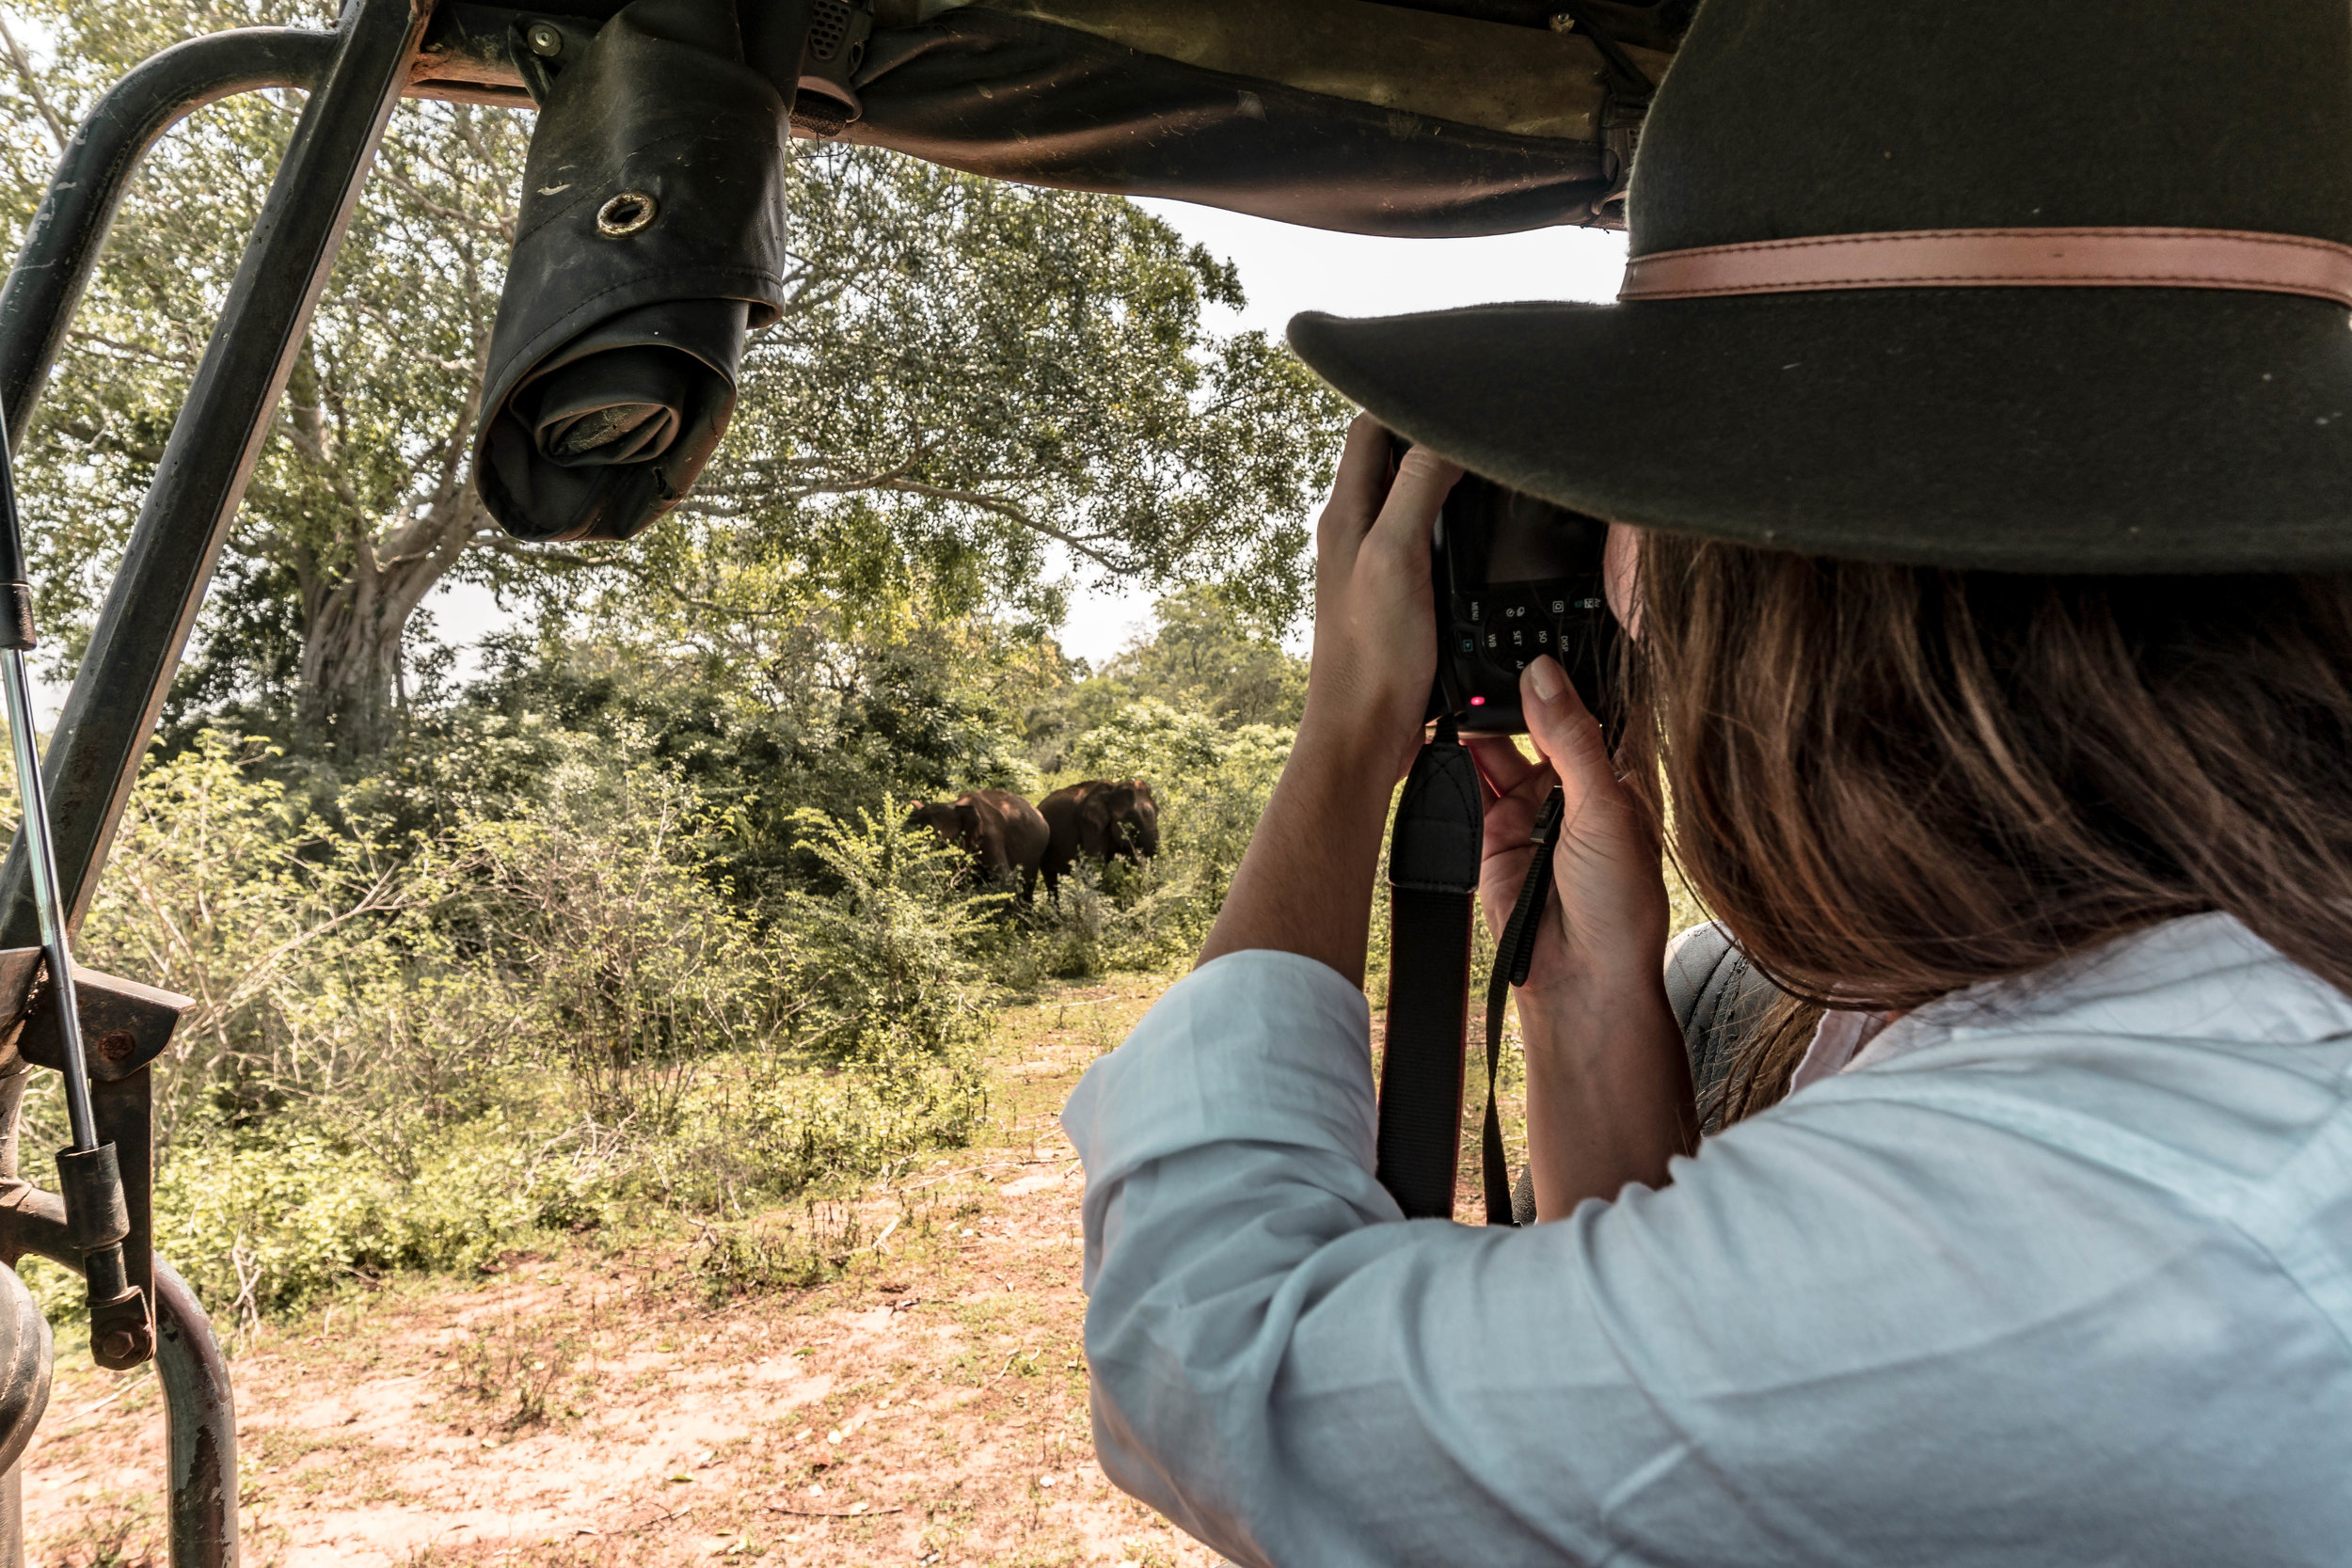 A CANDID PHOTO LUKE TOOK OF ME TAKING PHOTOS OF ELEPHANTS